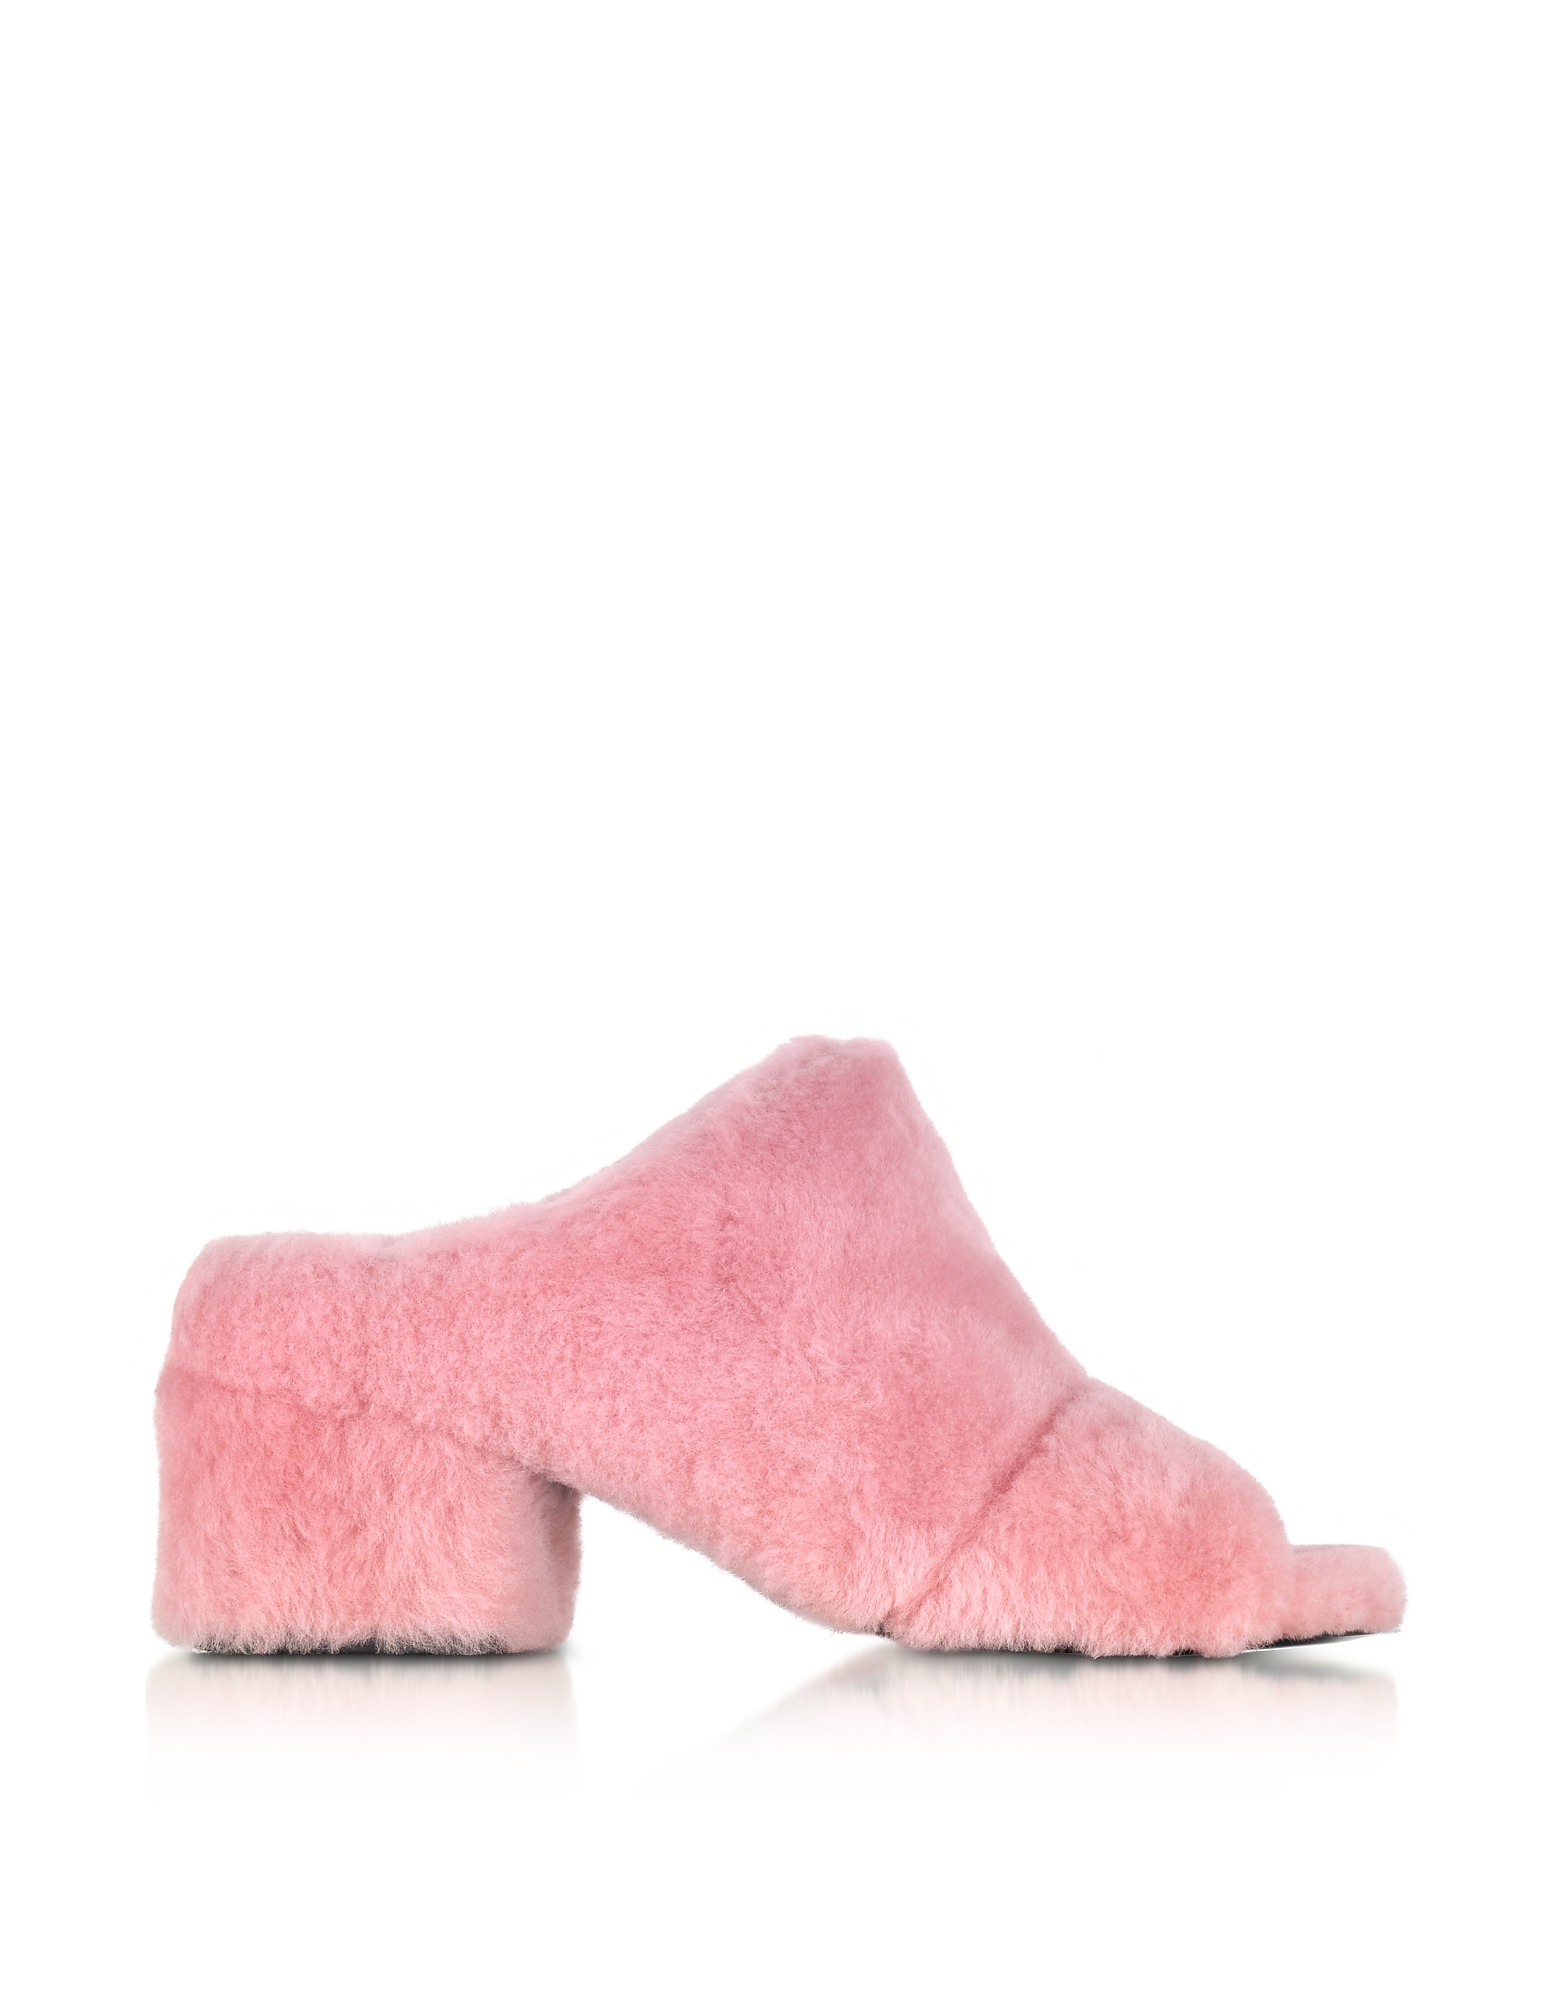 3.1 Phillip Lim Shoes, Cube Candy Pink Shearling Open Toe Mid-Heel Mules